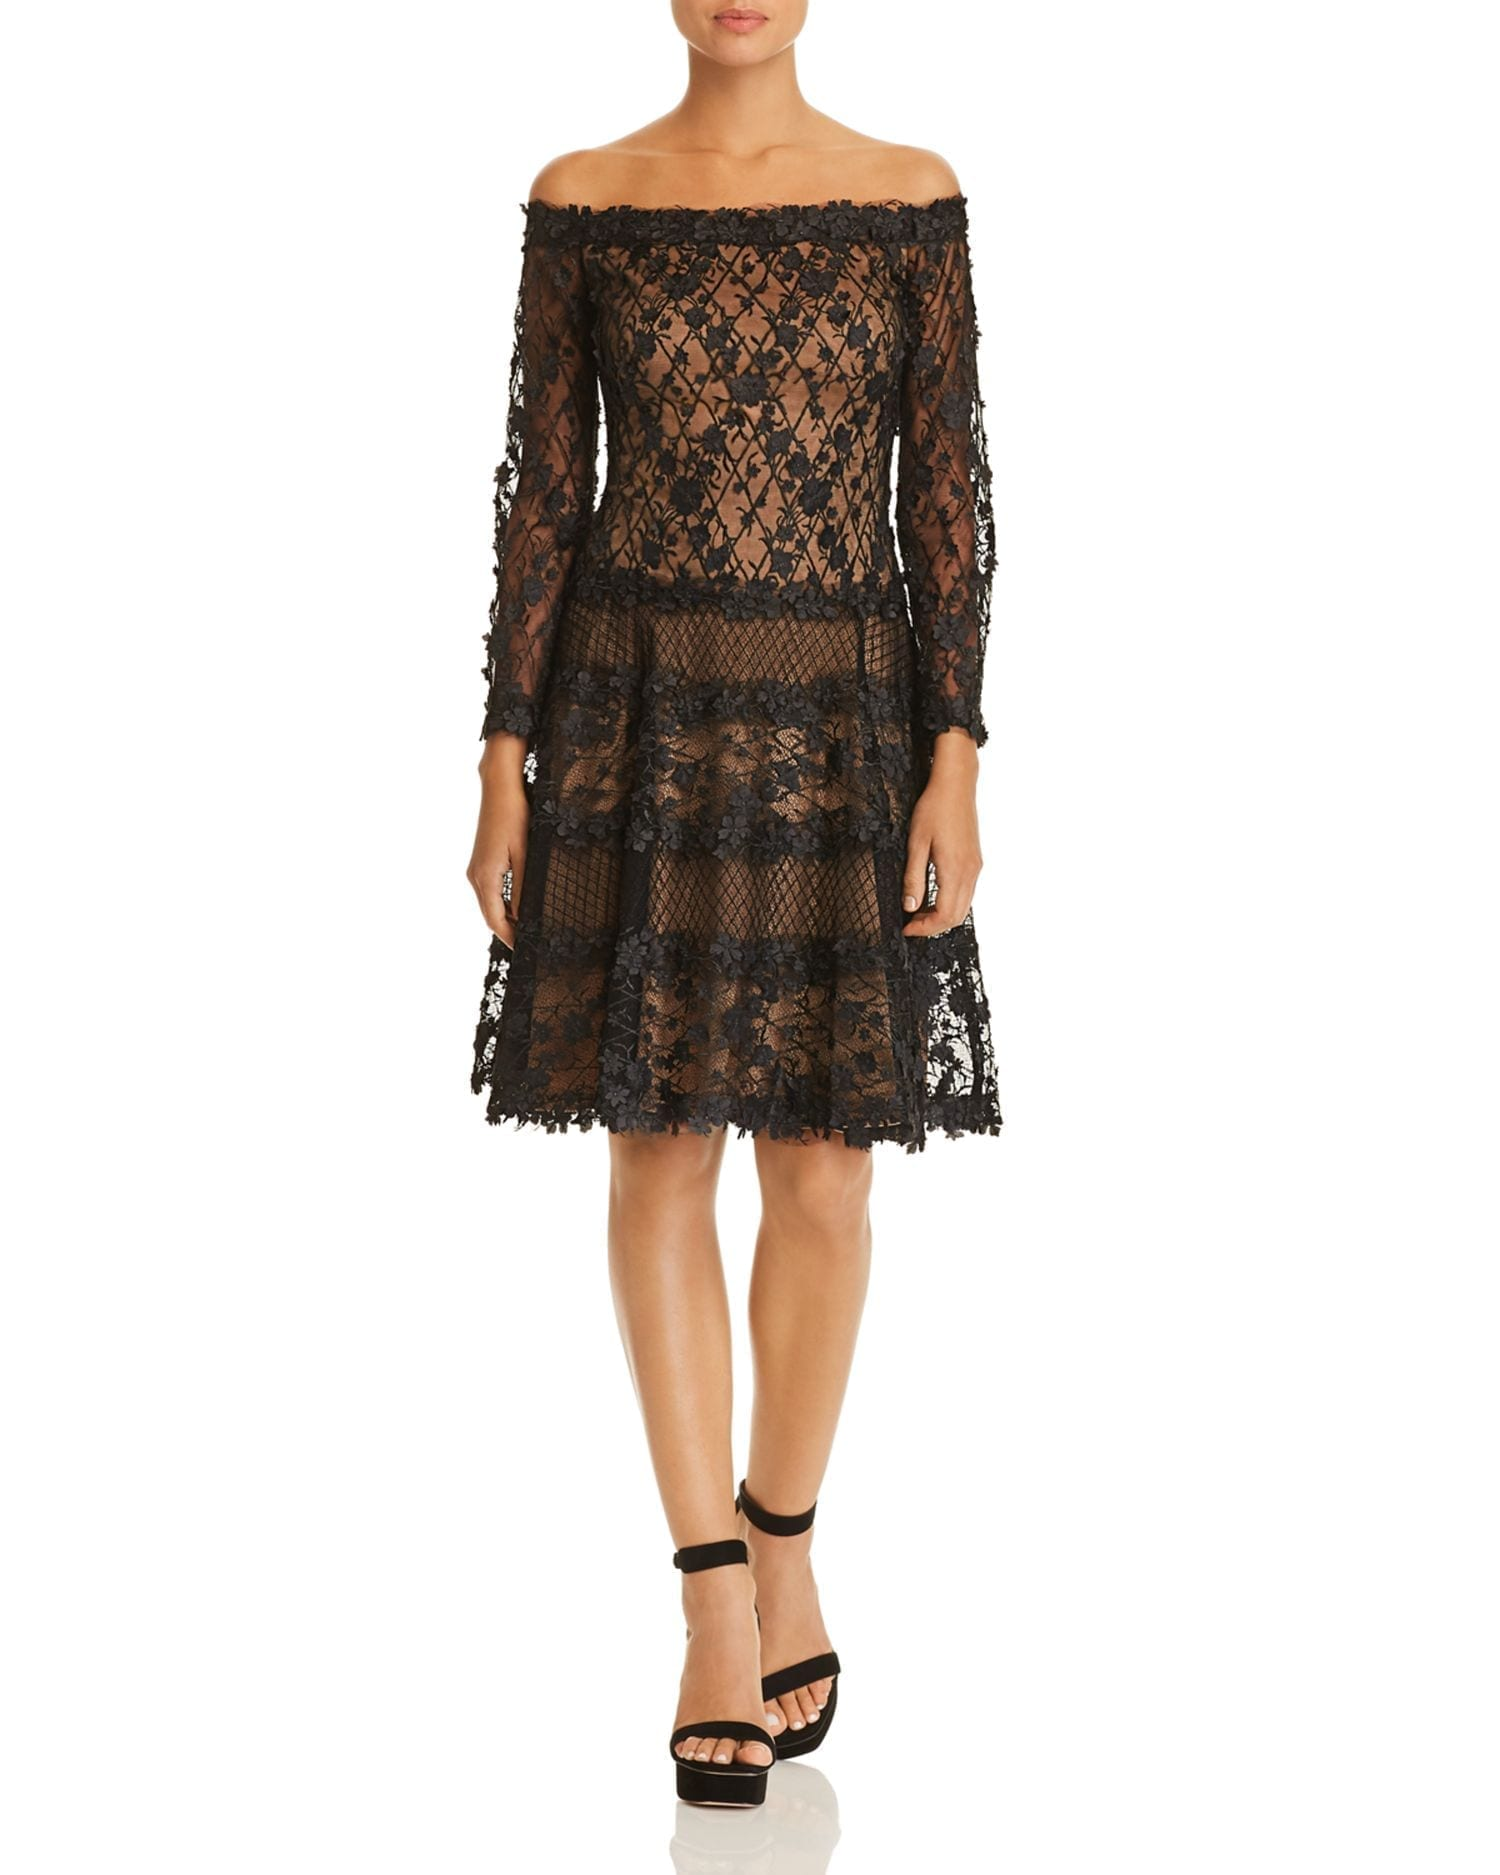 TADASHI SHOJI Floral Embellished Off-the-Shoulder Dress